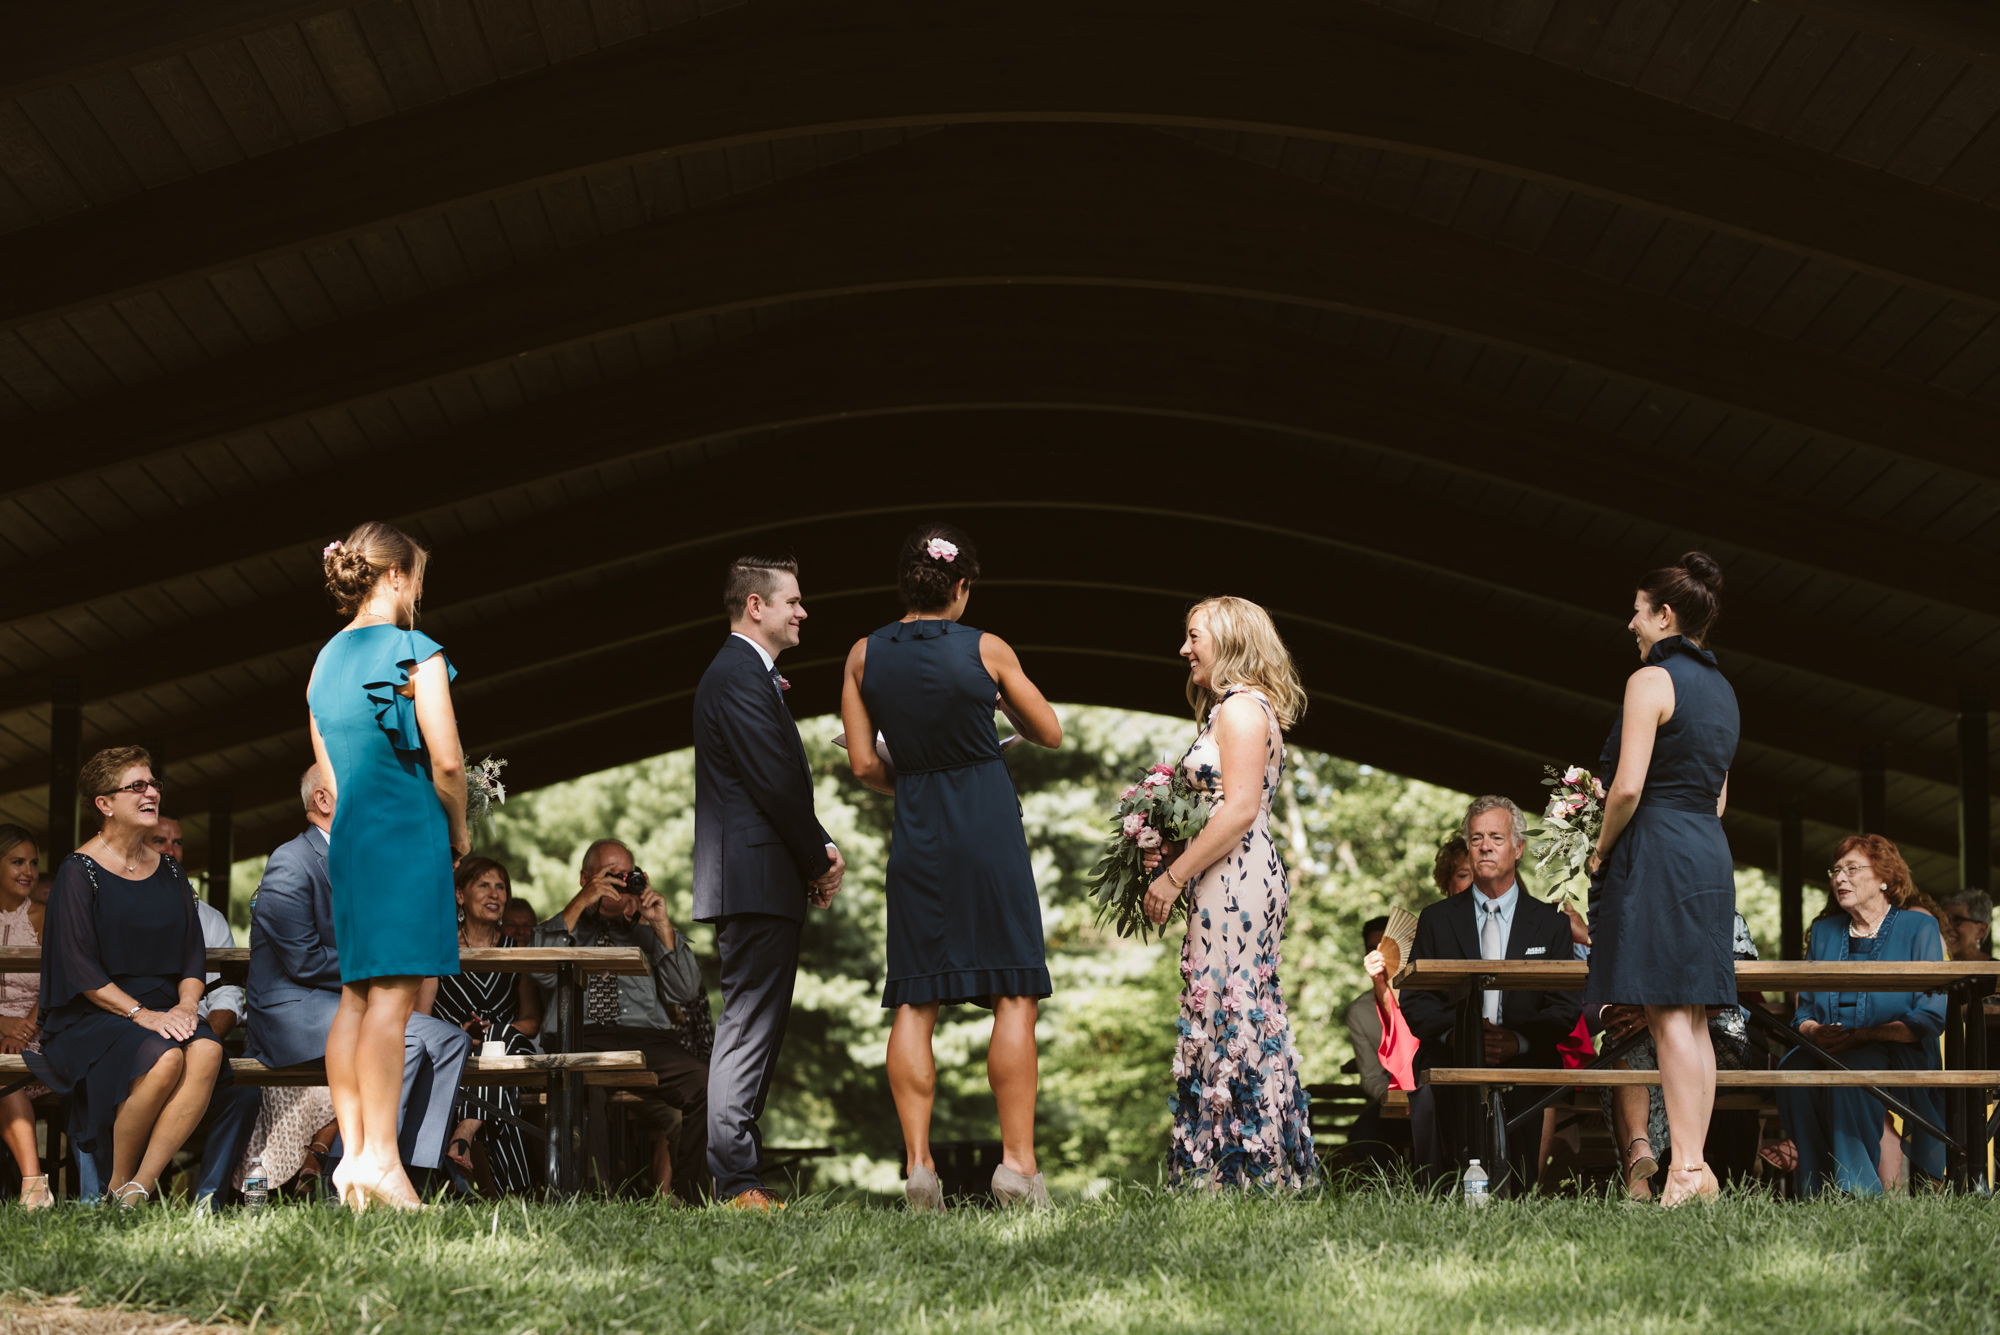 Pop-up Ceremony, Outdoor Wedding, Casual, Simple, Lake Roland, Baltimore, Maryland Wedding Photographer, Laid Back, DIY, Elegant Camp Pavilion,